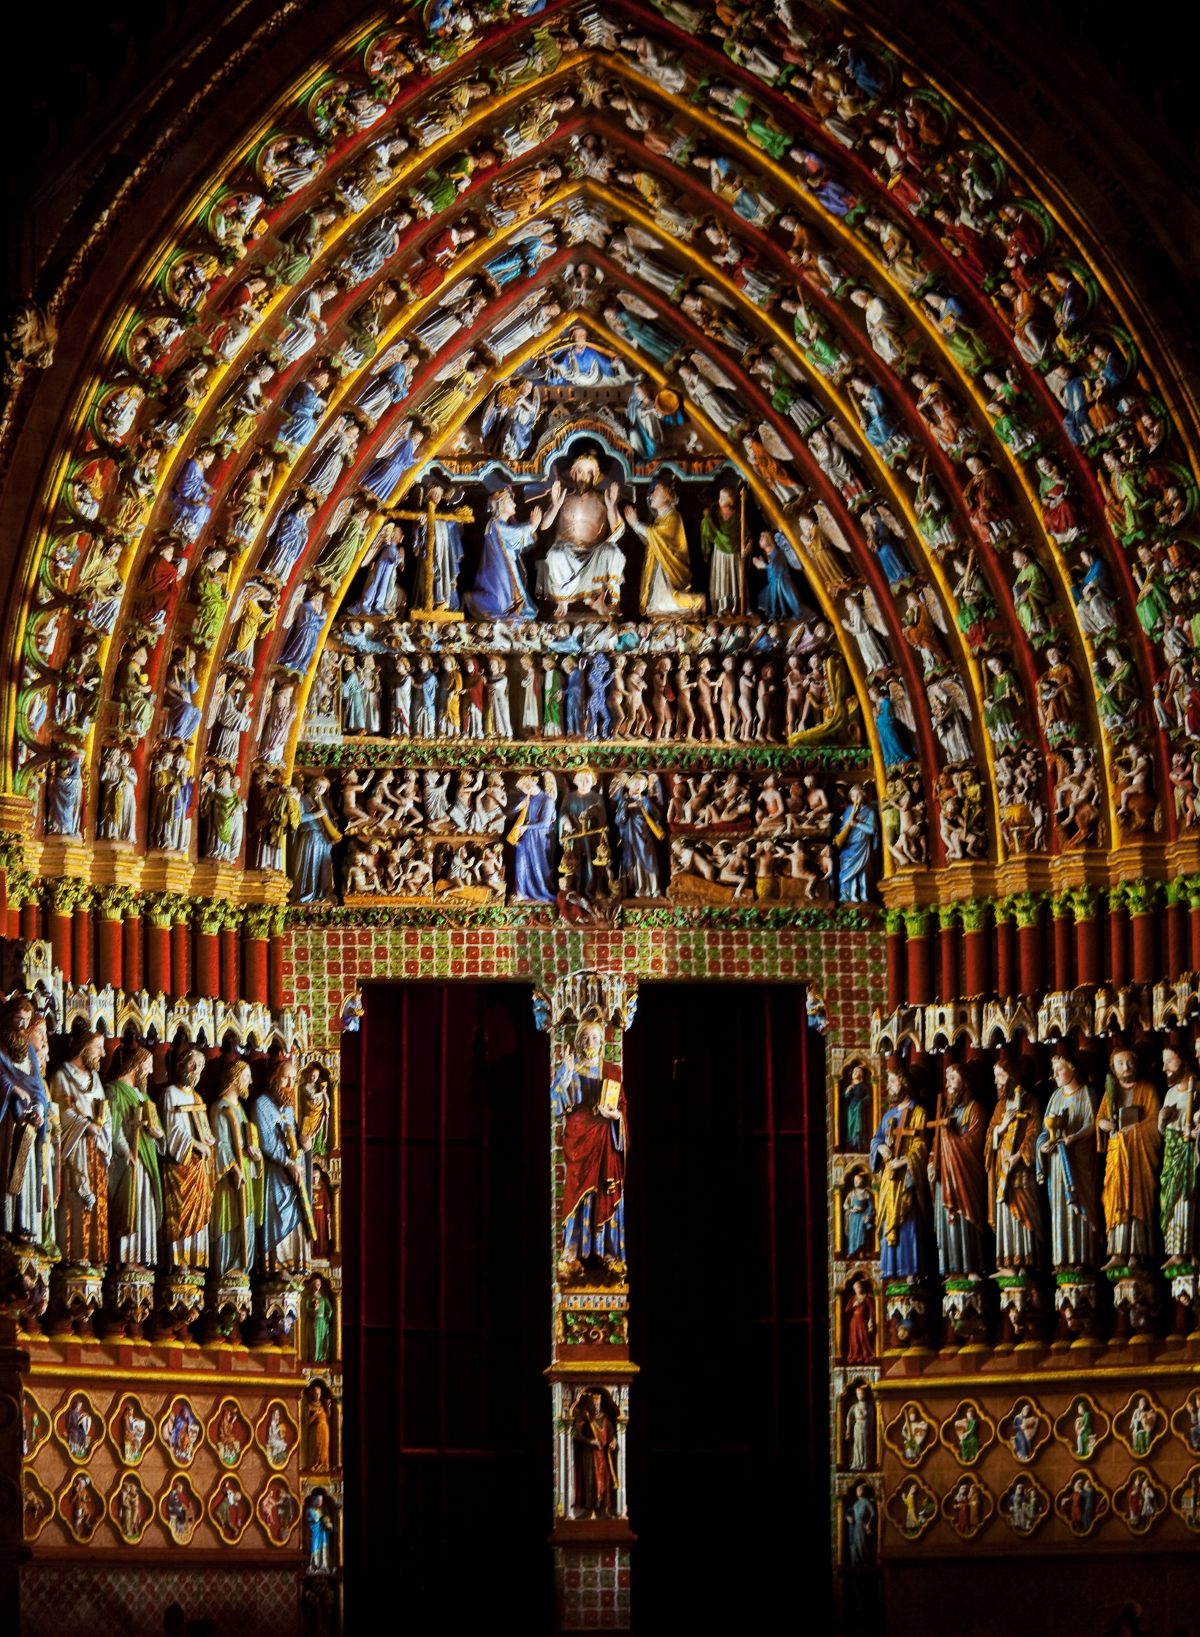 amiens-cathedral-the-central-portal-colored-lighting-1.jpg